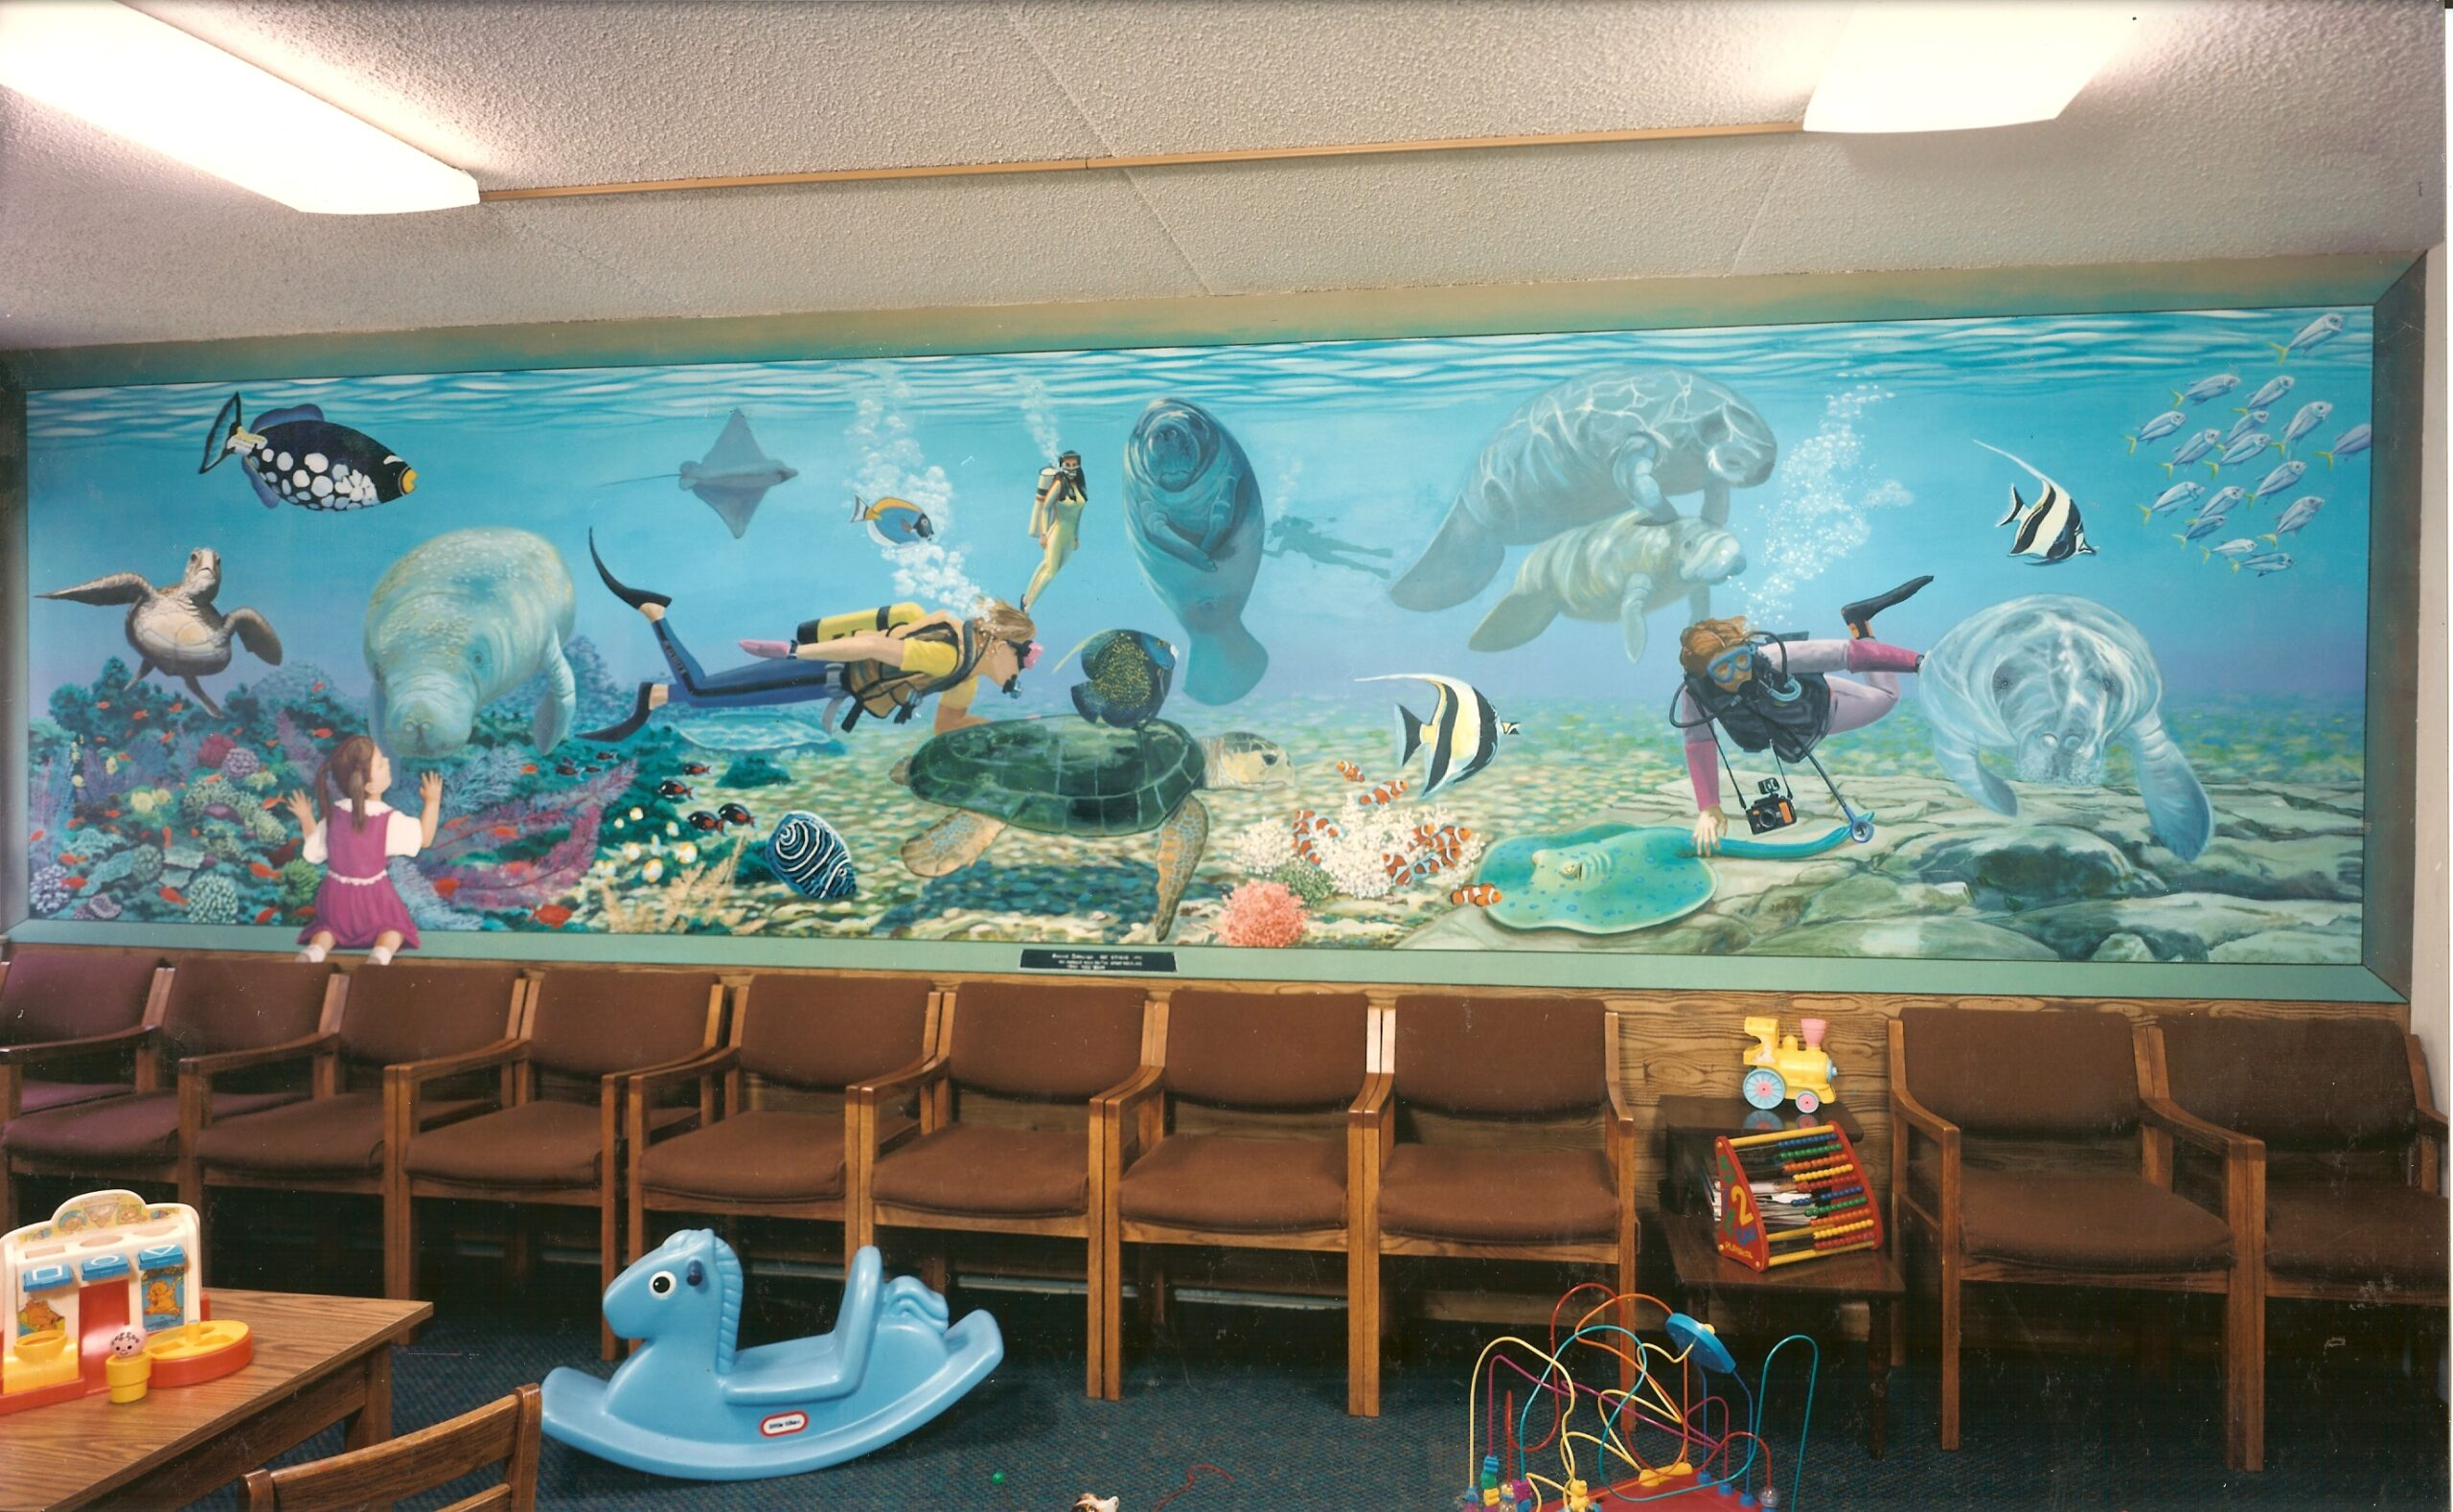 Bonnie siracusa murals fine art for Art room mural ideas